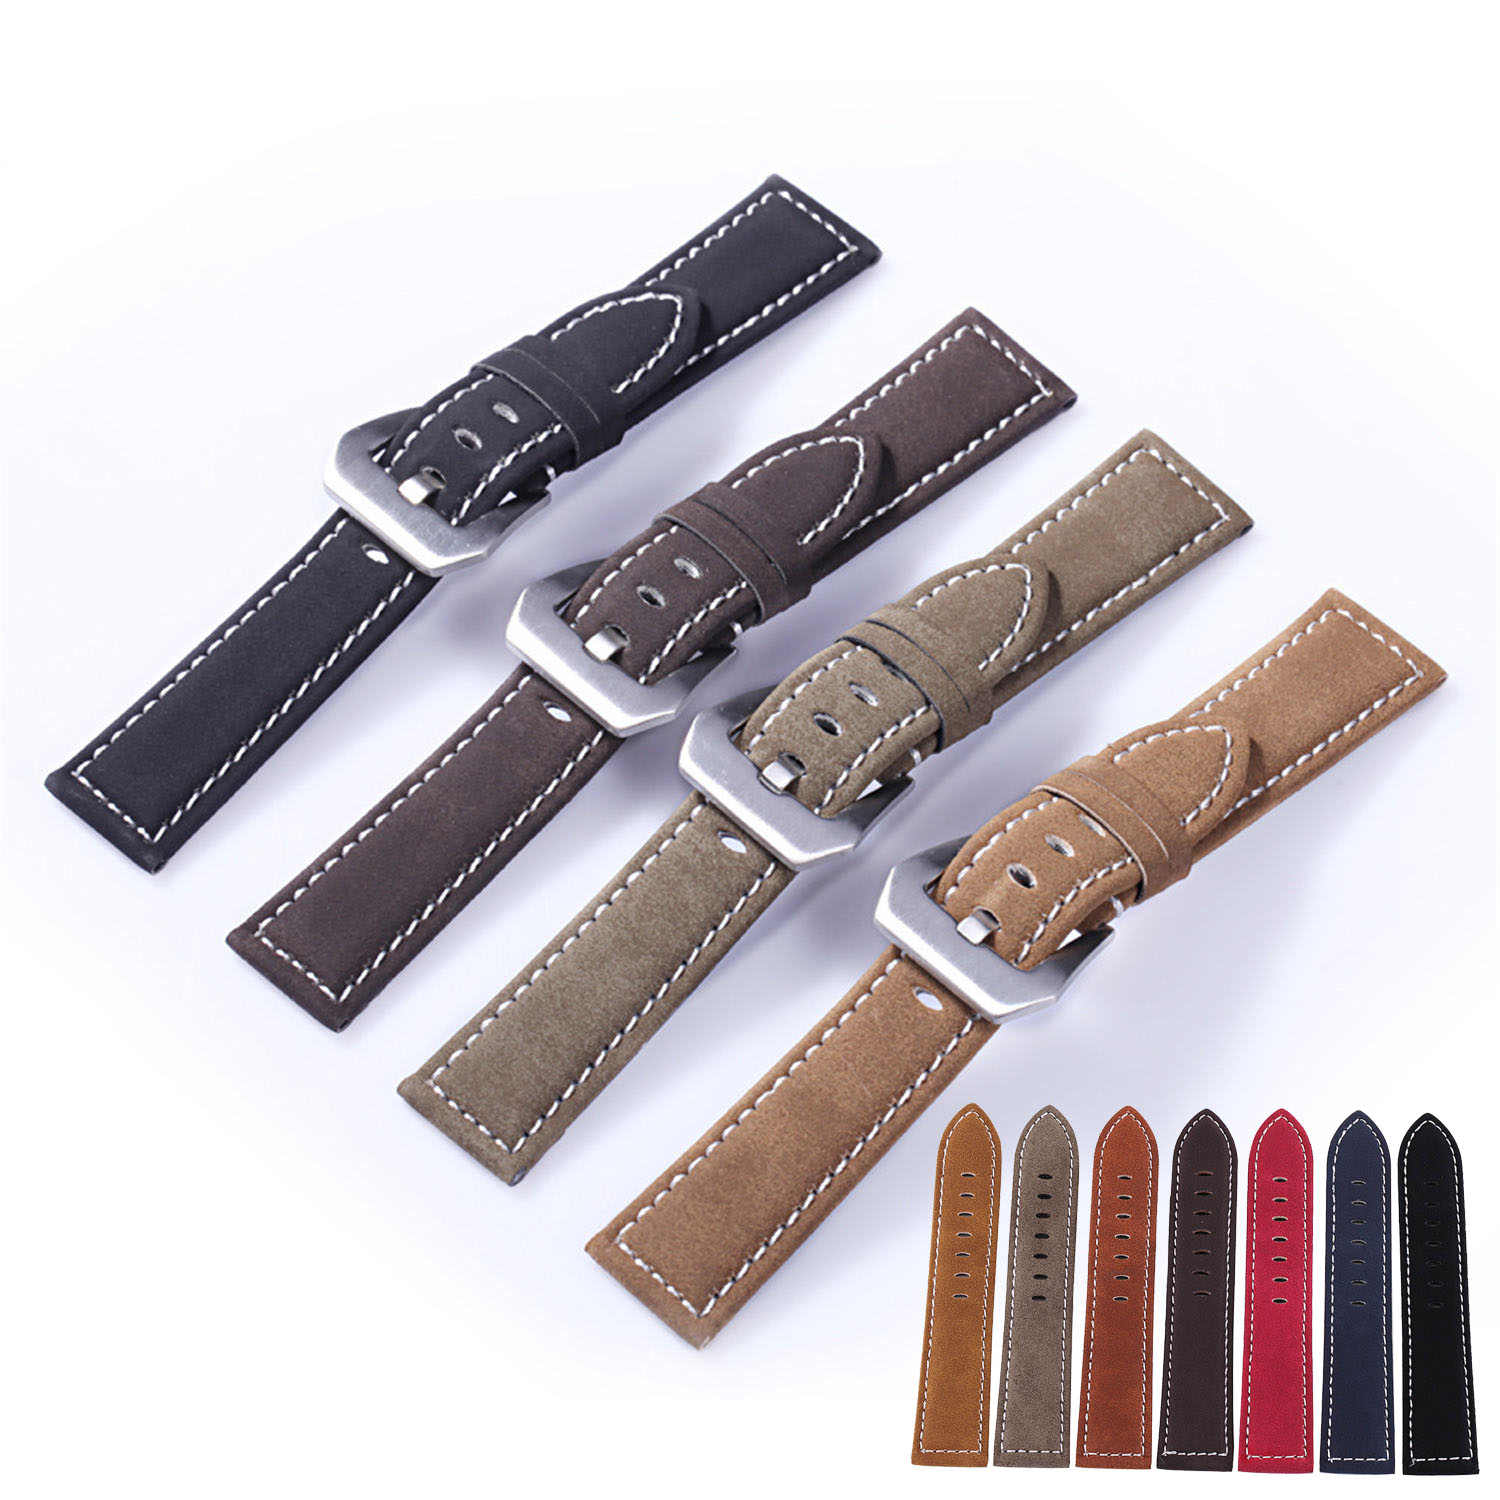 New Arrival Black Brown Coffee Olive Green Retro Genuine Watch Band Vintage Real Leather Wrist Strap Belt 18mm 20mm 22mm 24mm